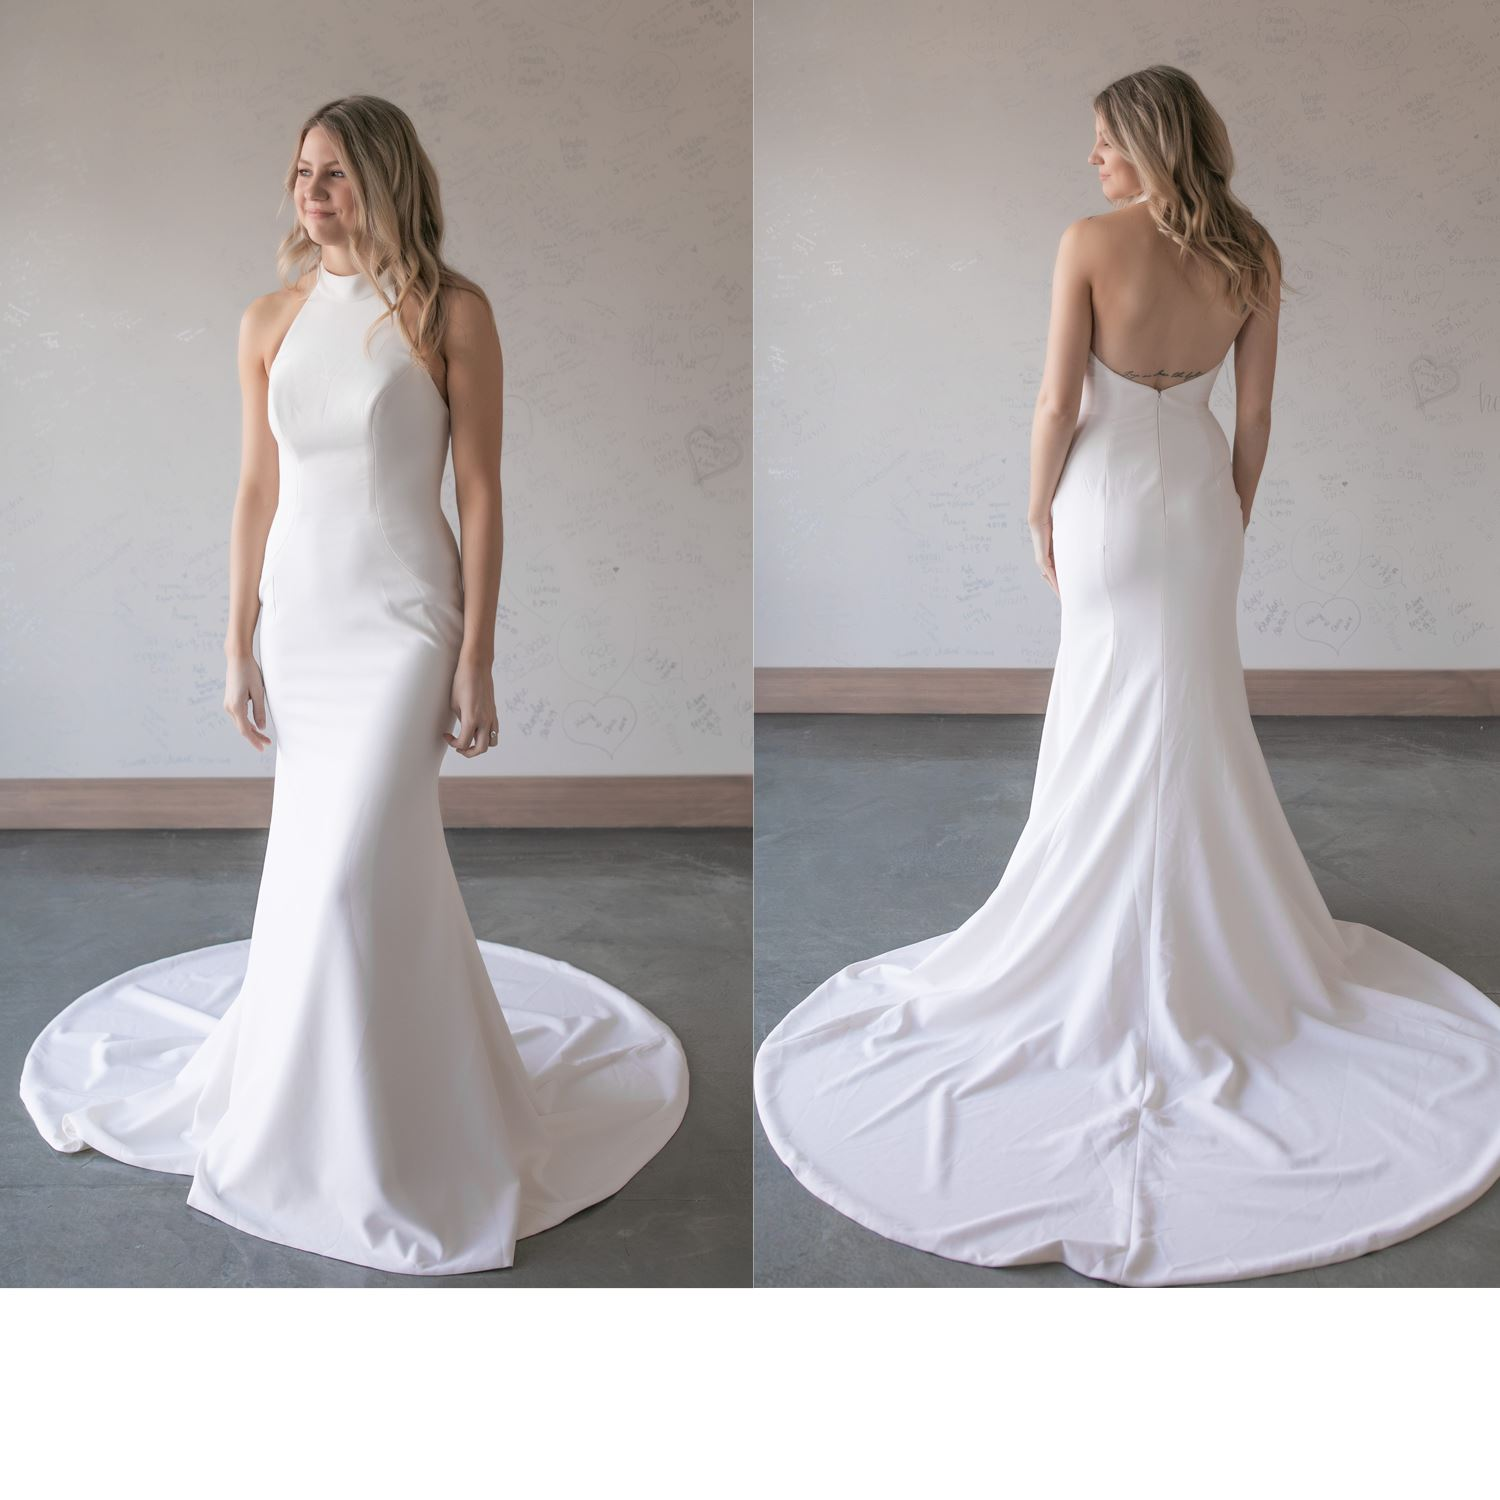 Alexia - Size 8 - Ivory - Originally priced $999 - Sample box price $899